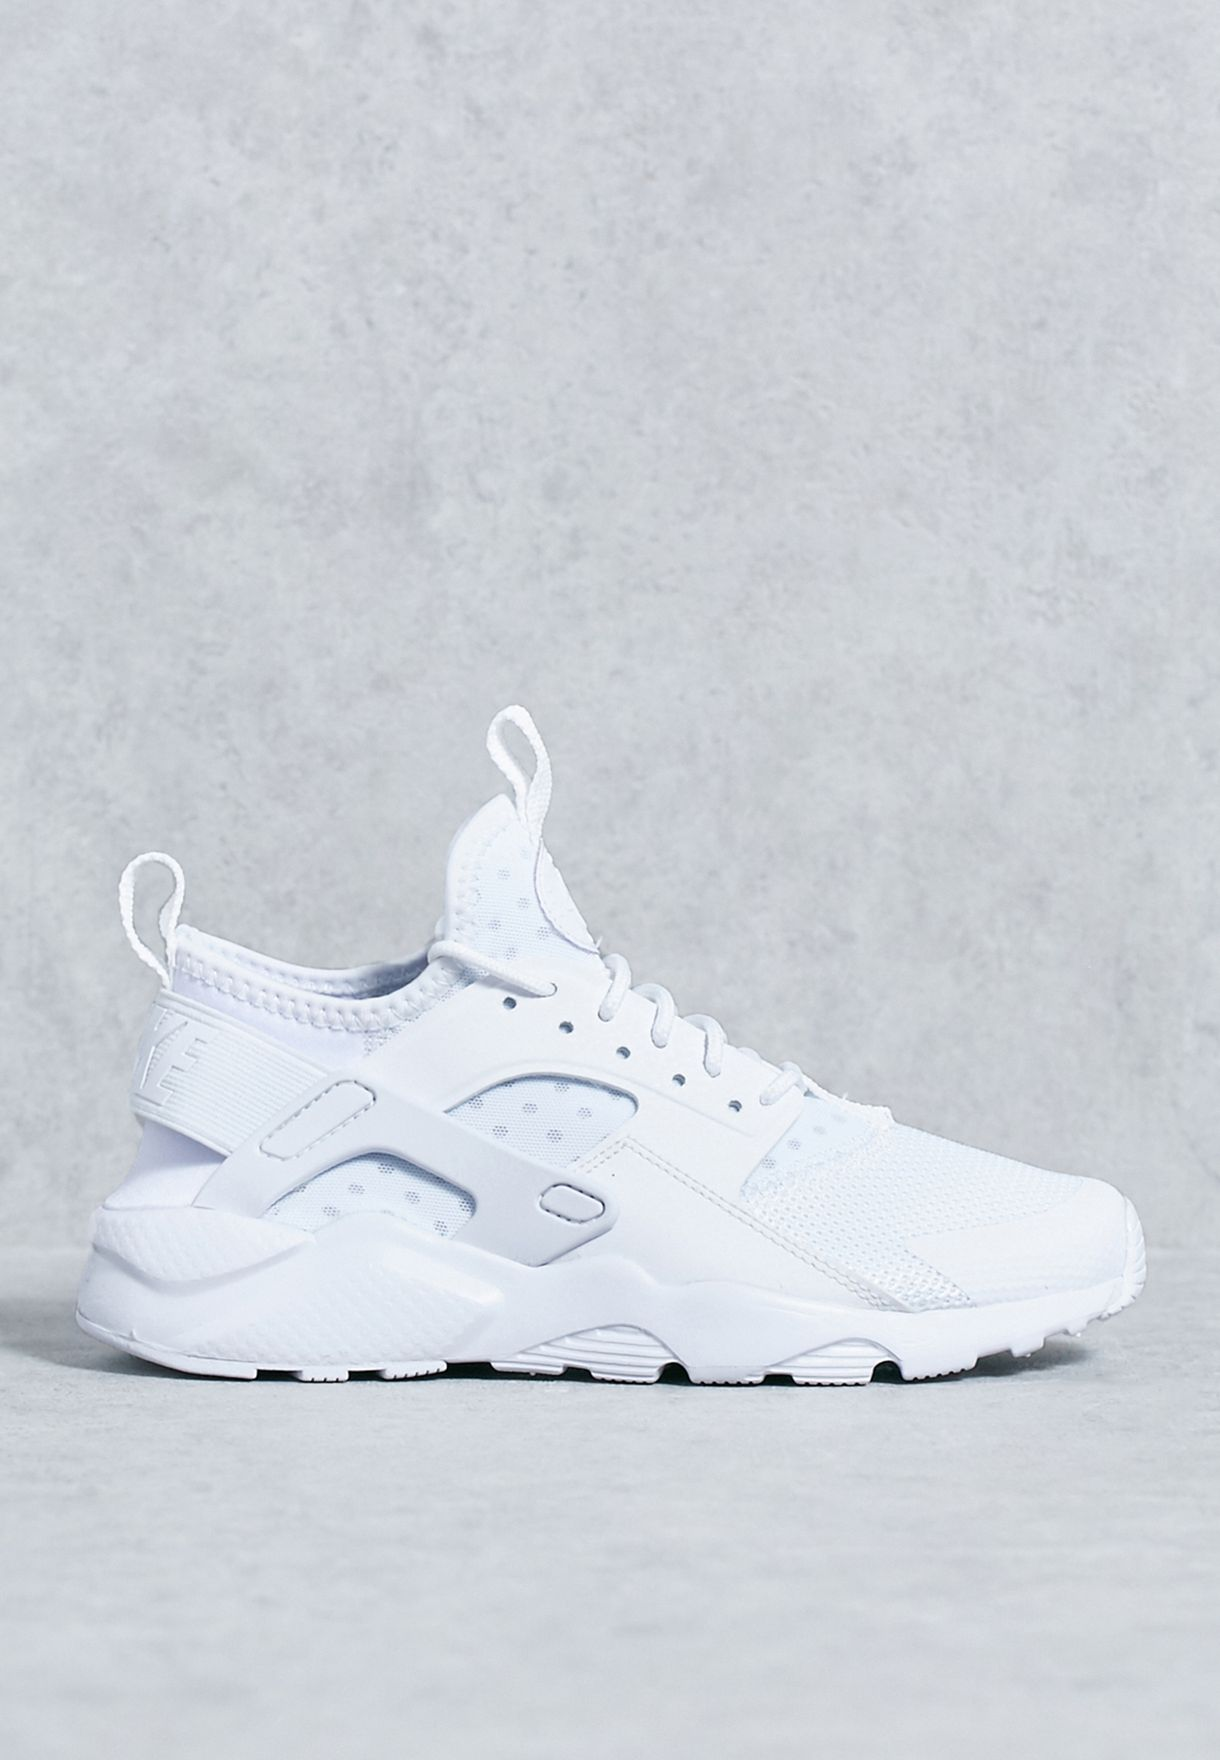 quality design 060aa 66447 ... where to buy shop nike white air huarache run ultra youth 847569 100  for kids in